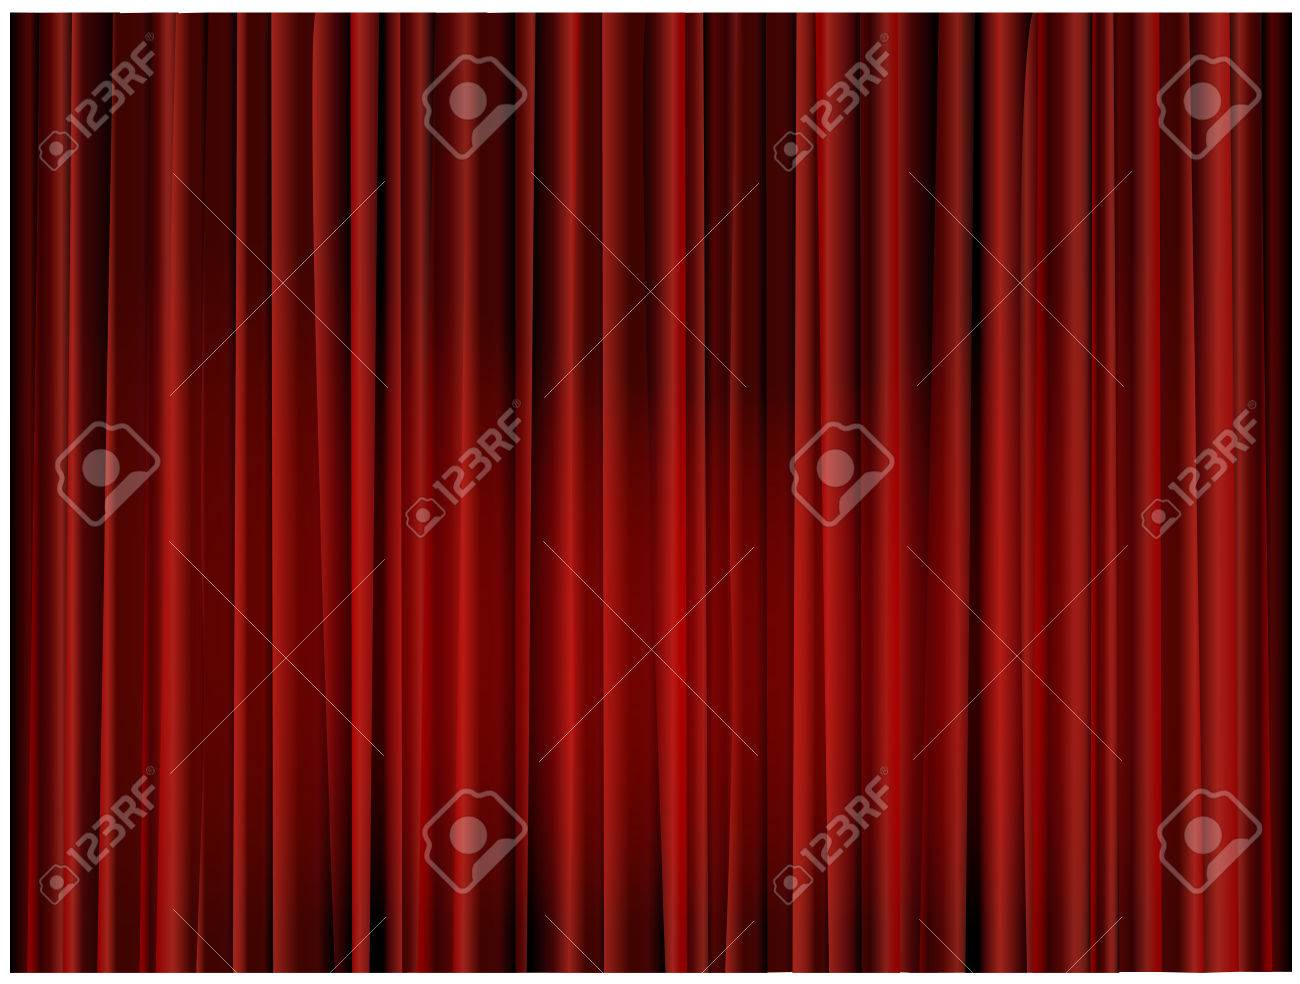 Theater curtain background Stock Vector - 8915781